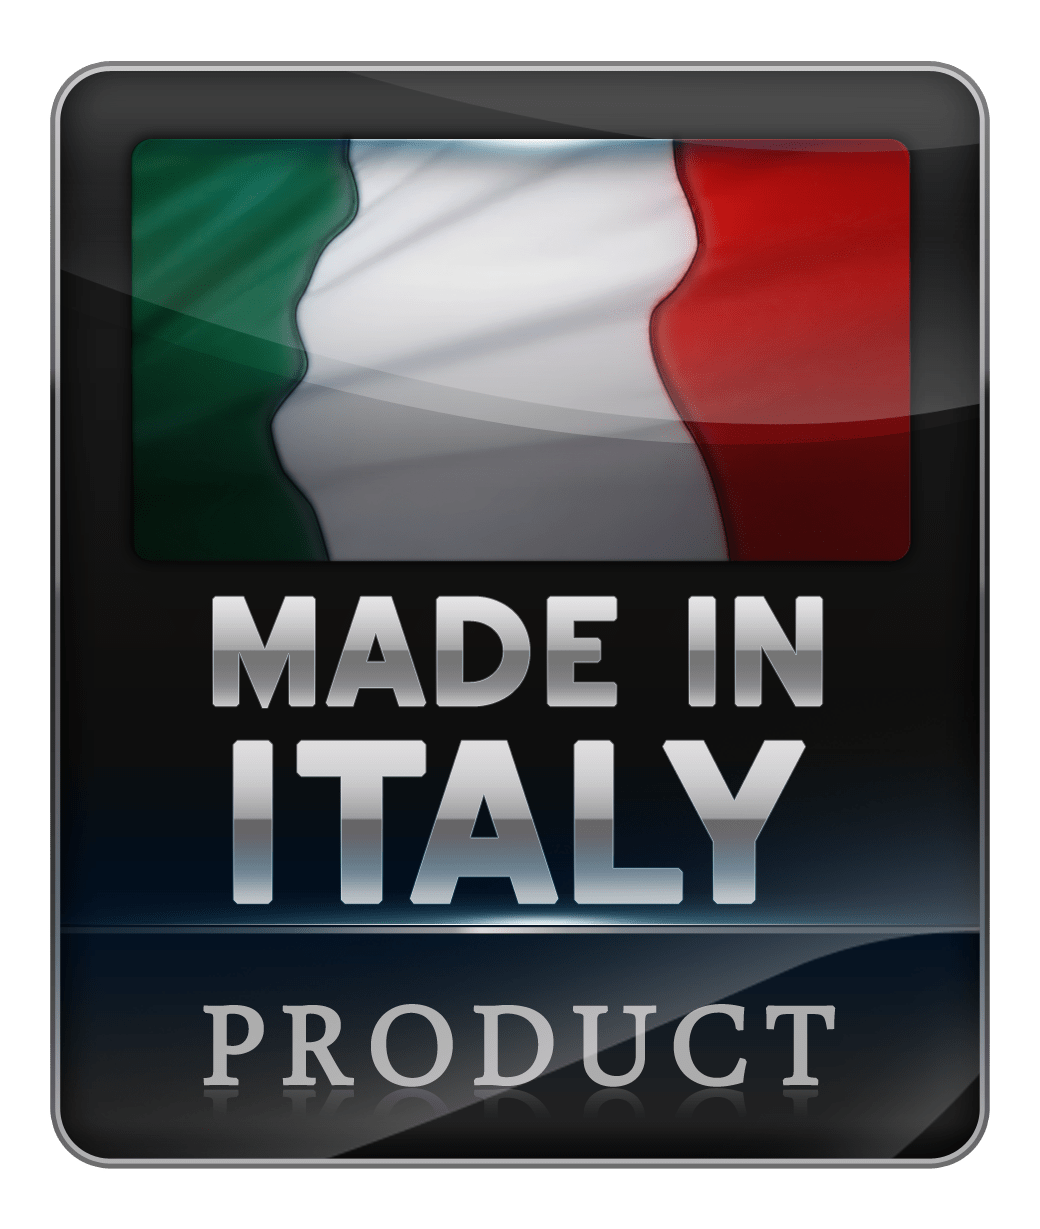 made_in_italy_product_logo_by_global_security